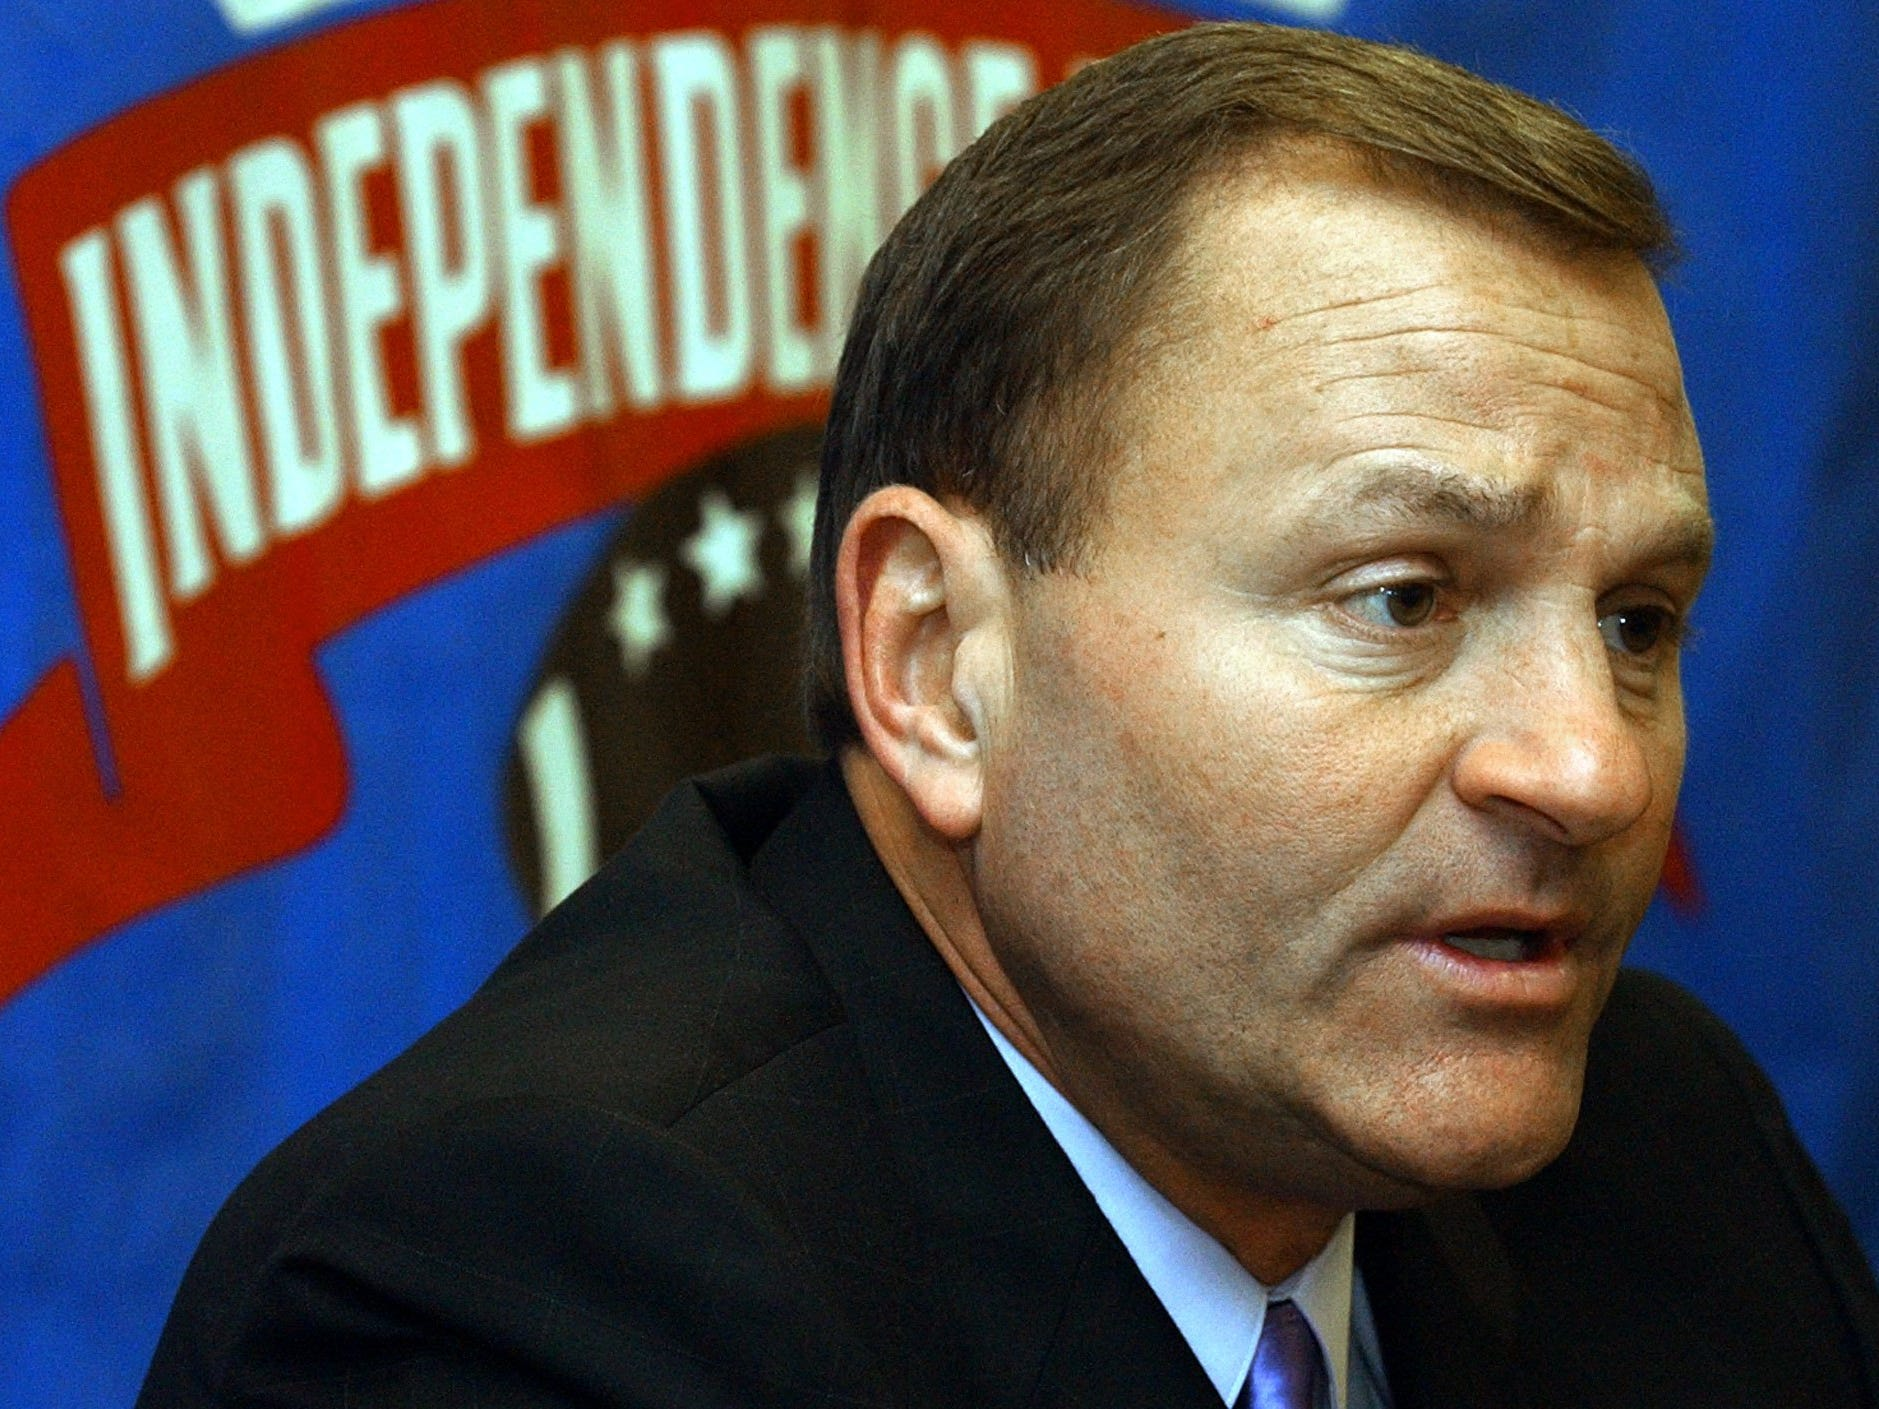 Iowa State football coach Dan McCarney discusses his team's preparation for their 2004 Independence Bowl game against Miami of Ohio during a news conference in Shreveport, La., Dec. 27, 2004.